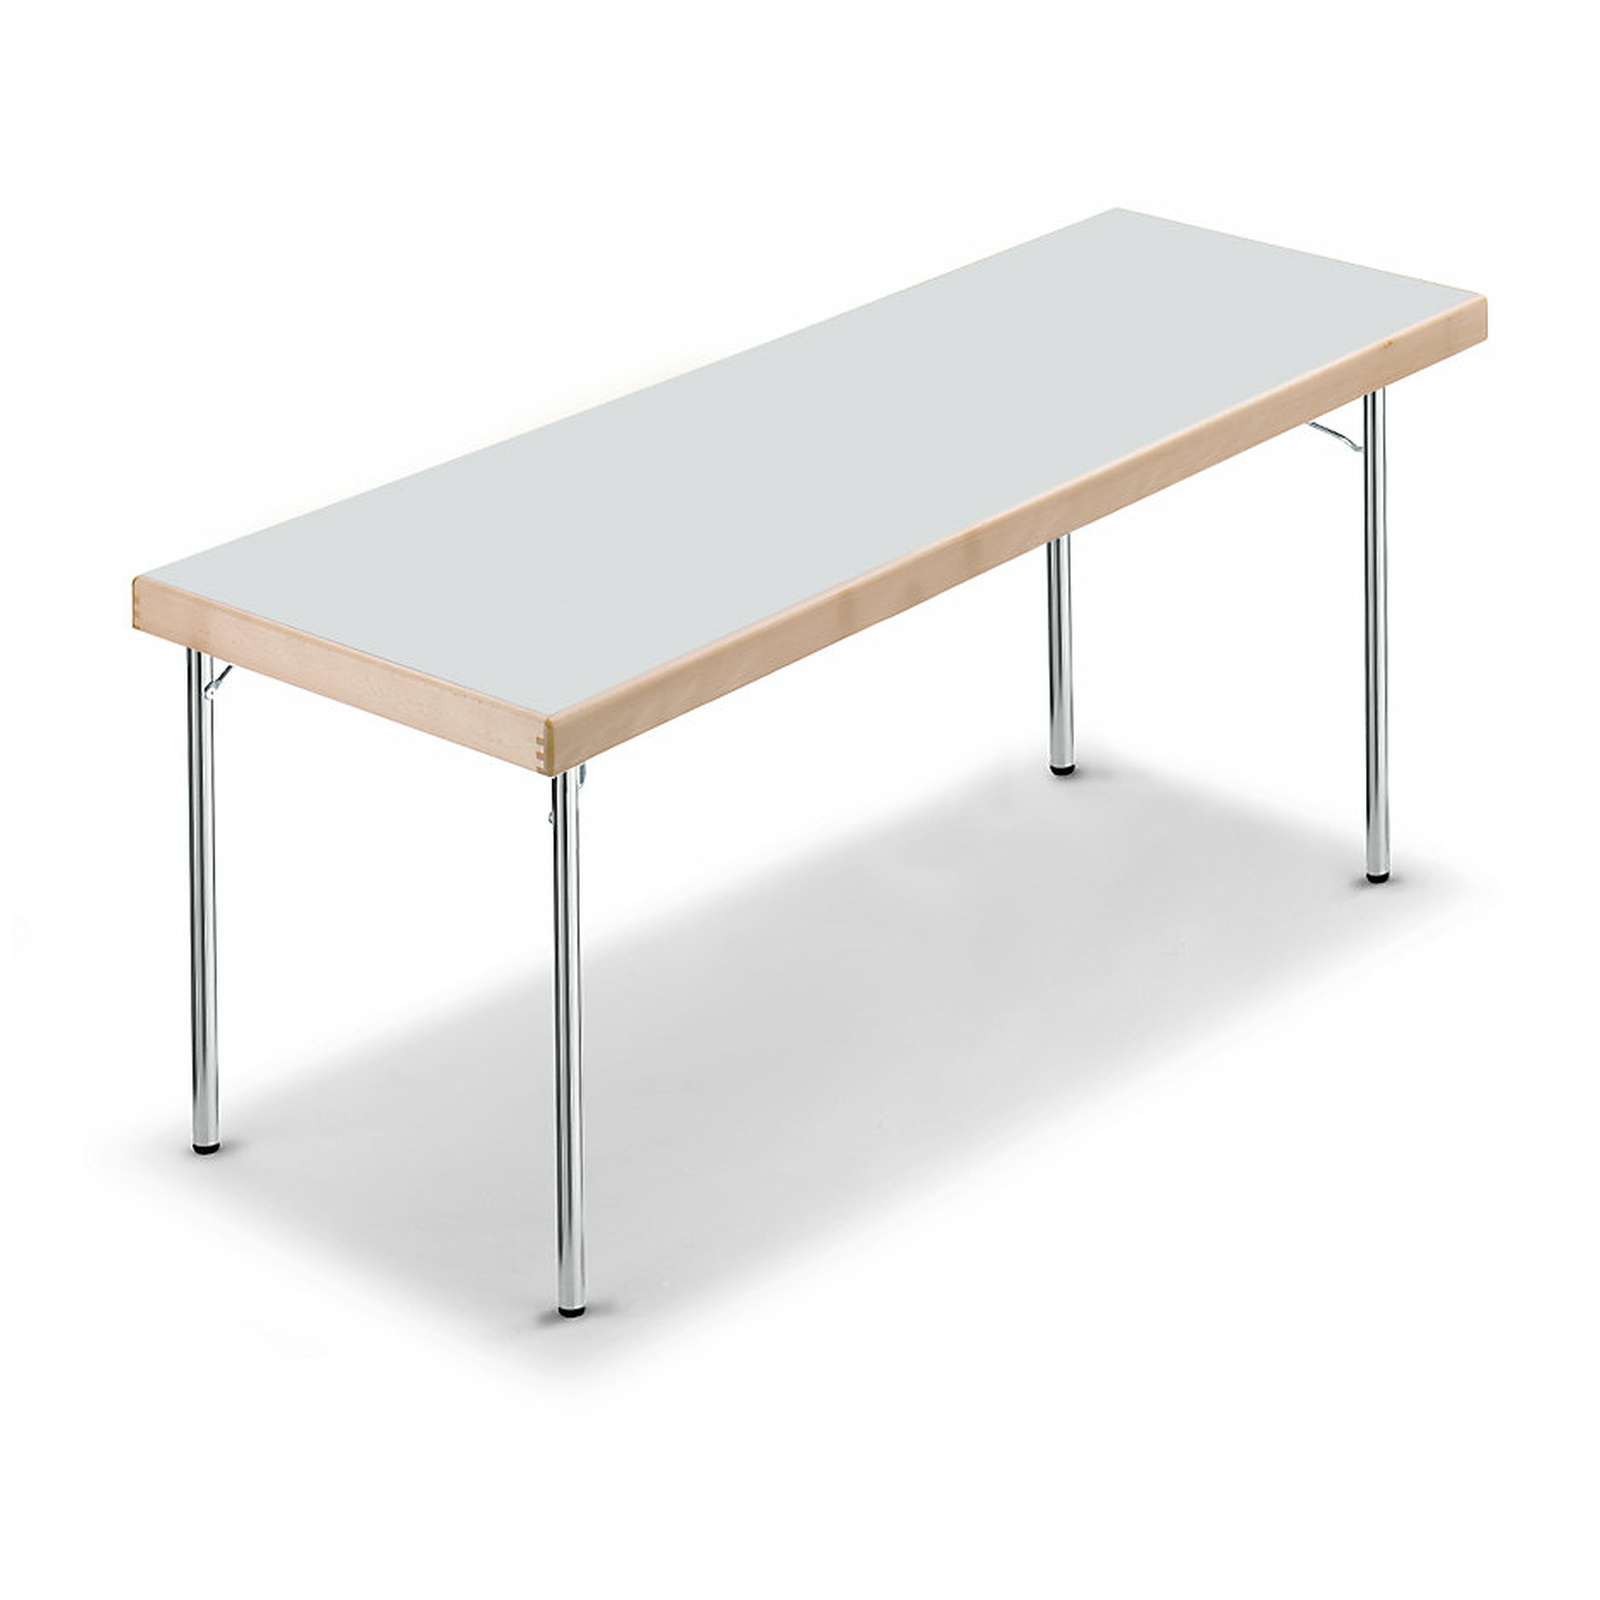 - 1700x700x720 Mm Folding Table With Chromed 4-Foot-Frame, Light